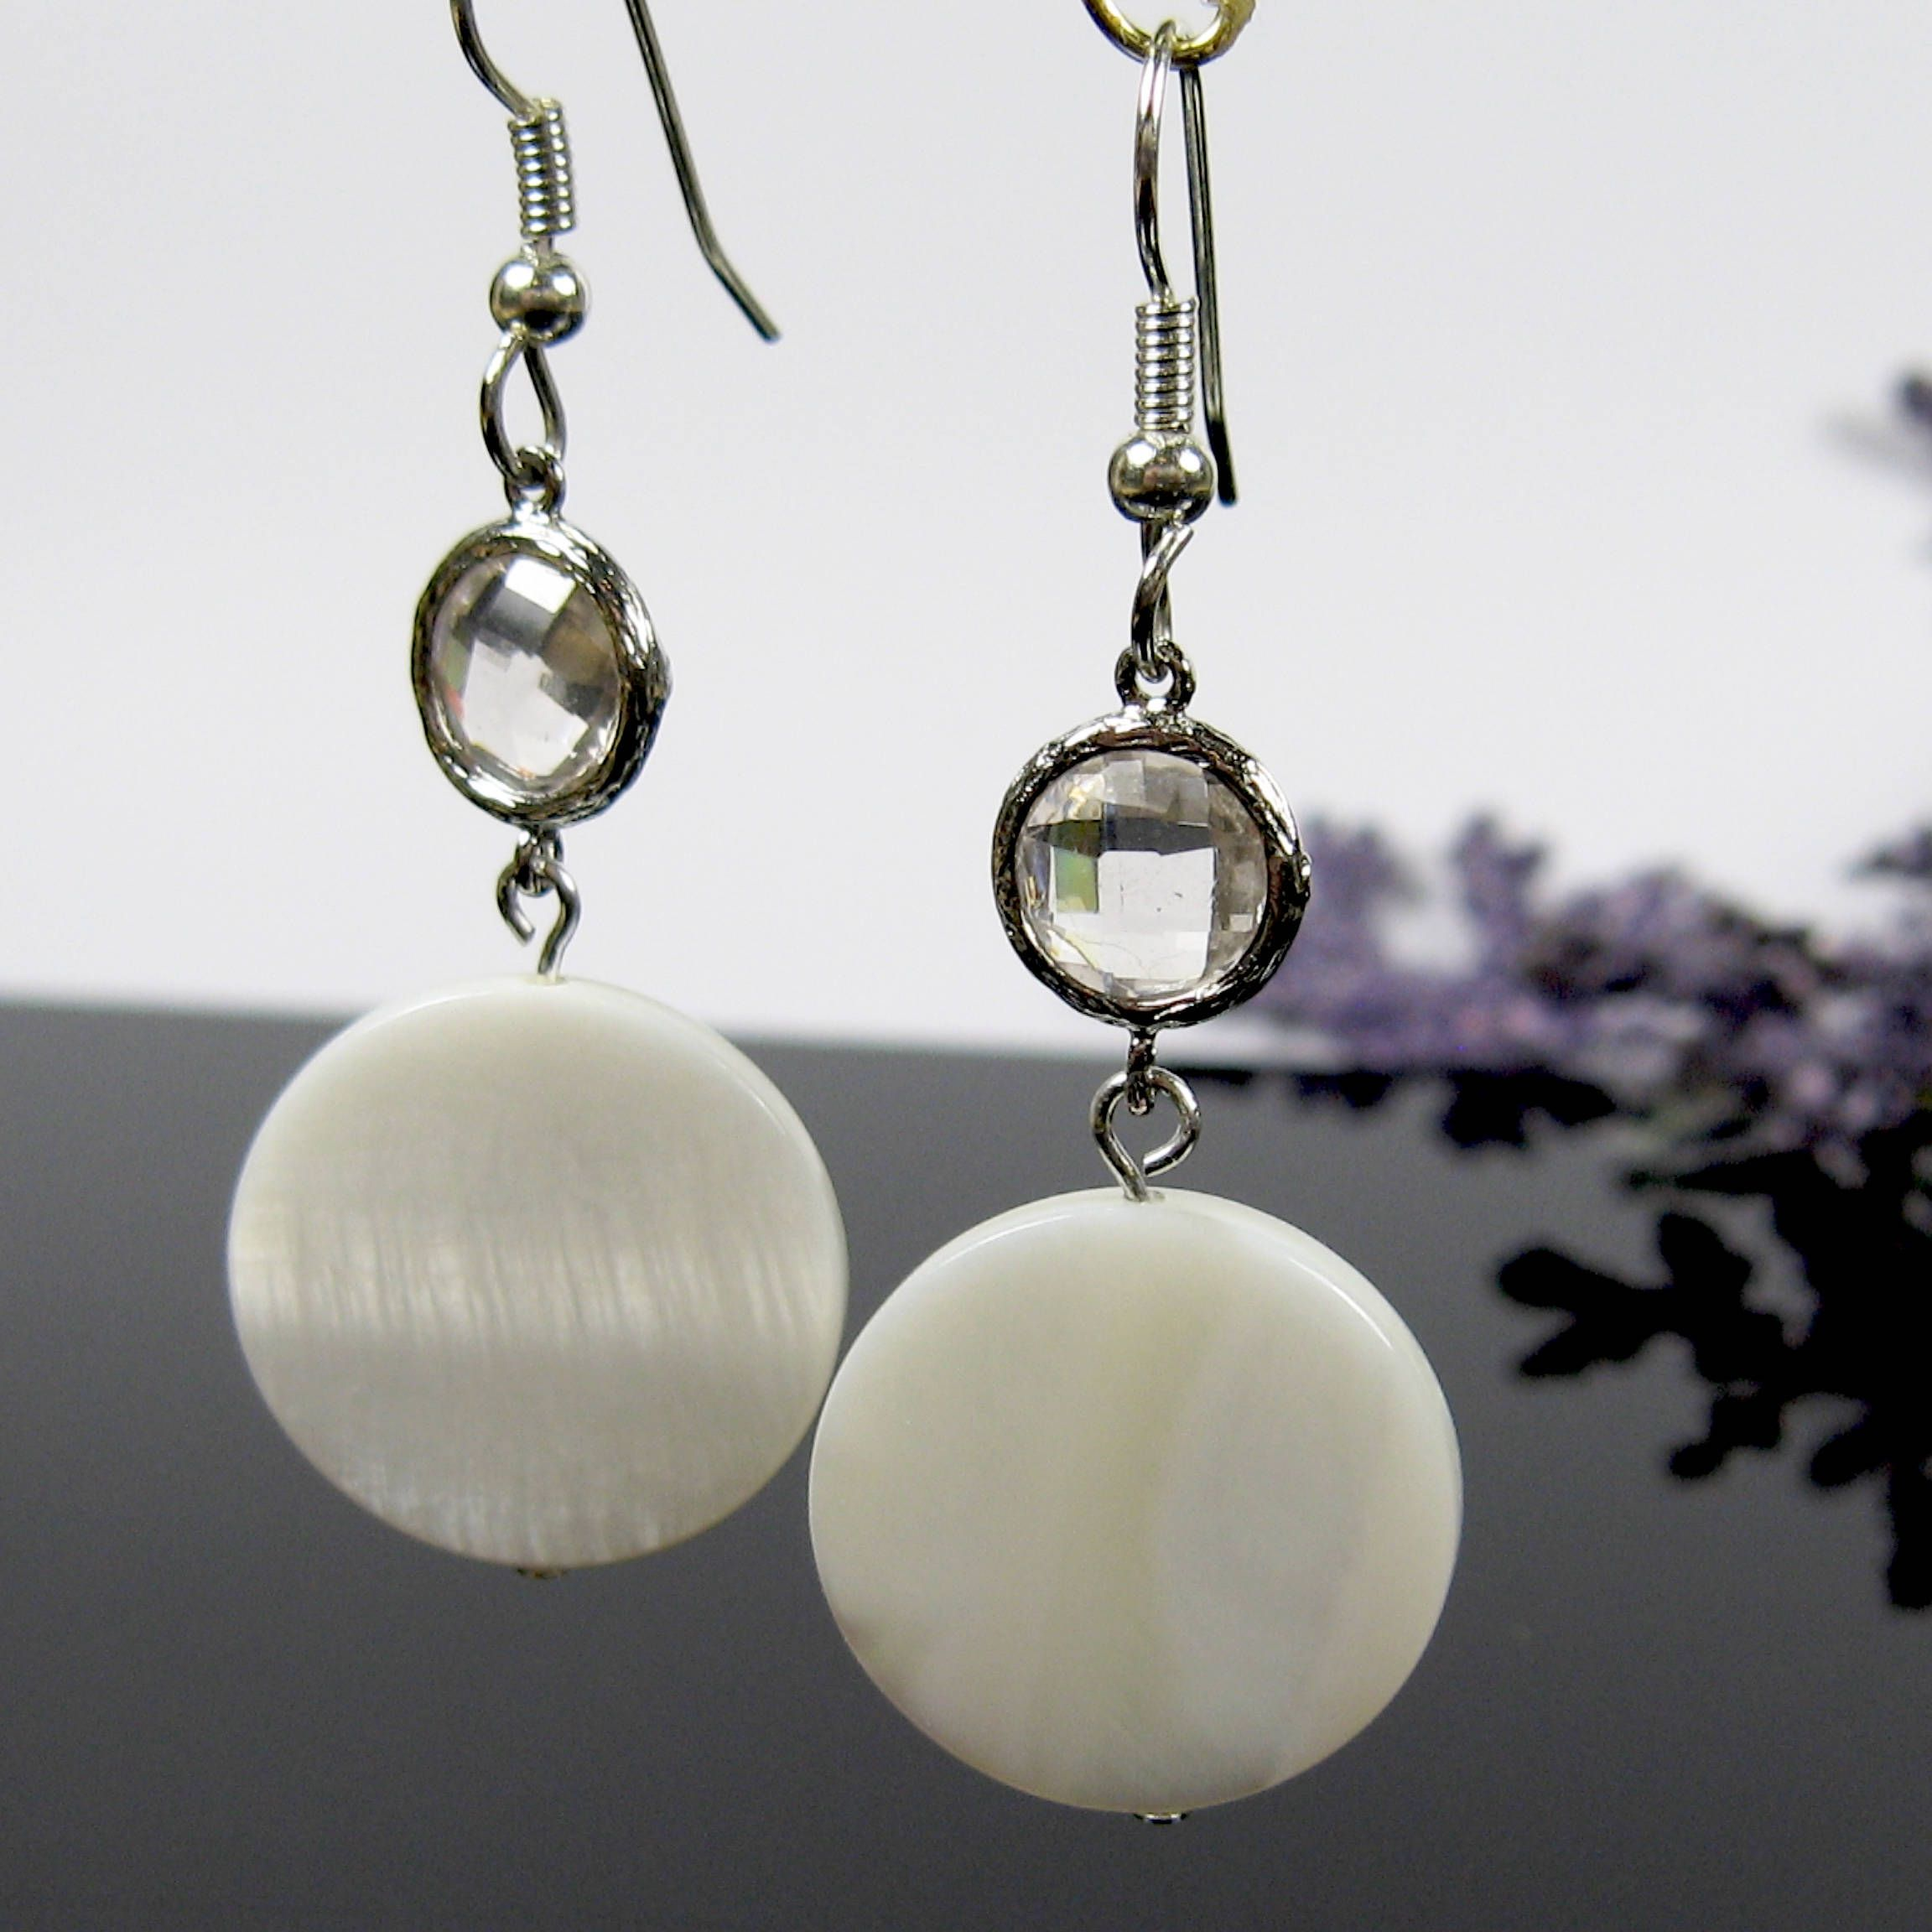 Mother Of Pearl Earrings Surgical Steel Off White Round Dangle Crystal Bridesmaids Nickel Free By Andesbeads On